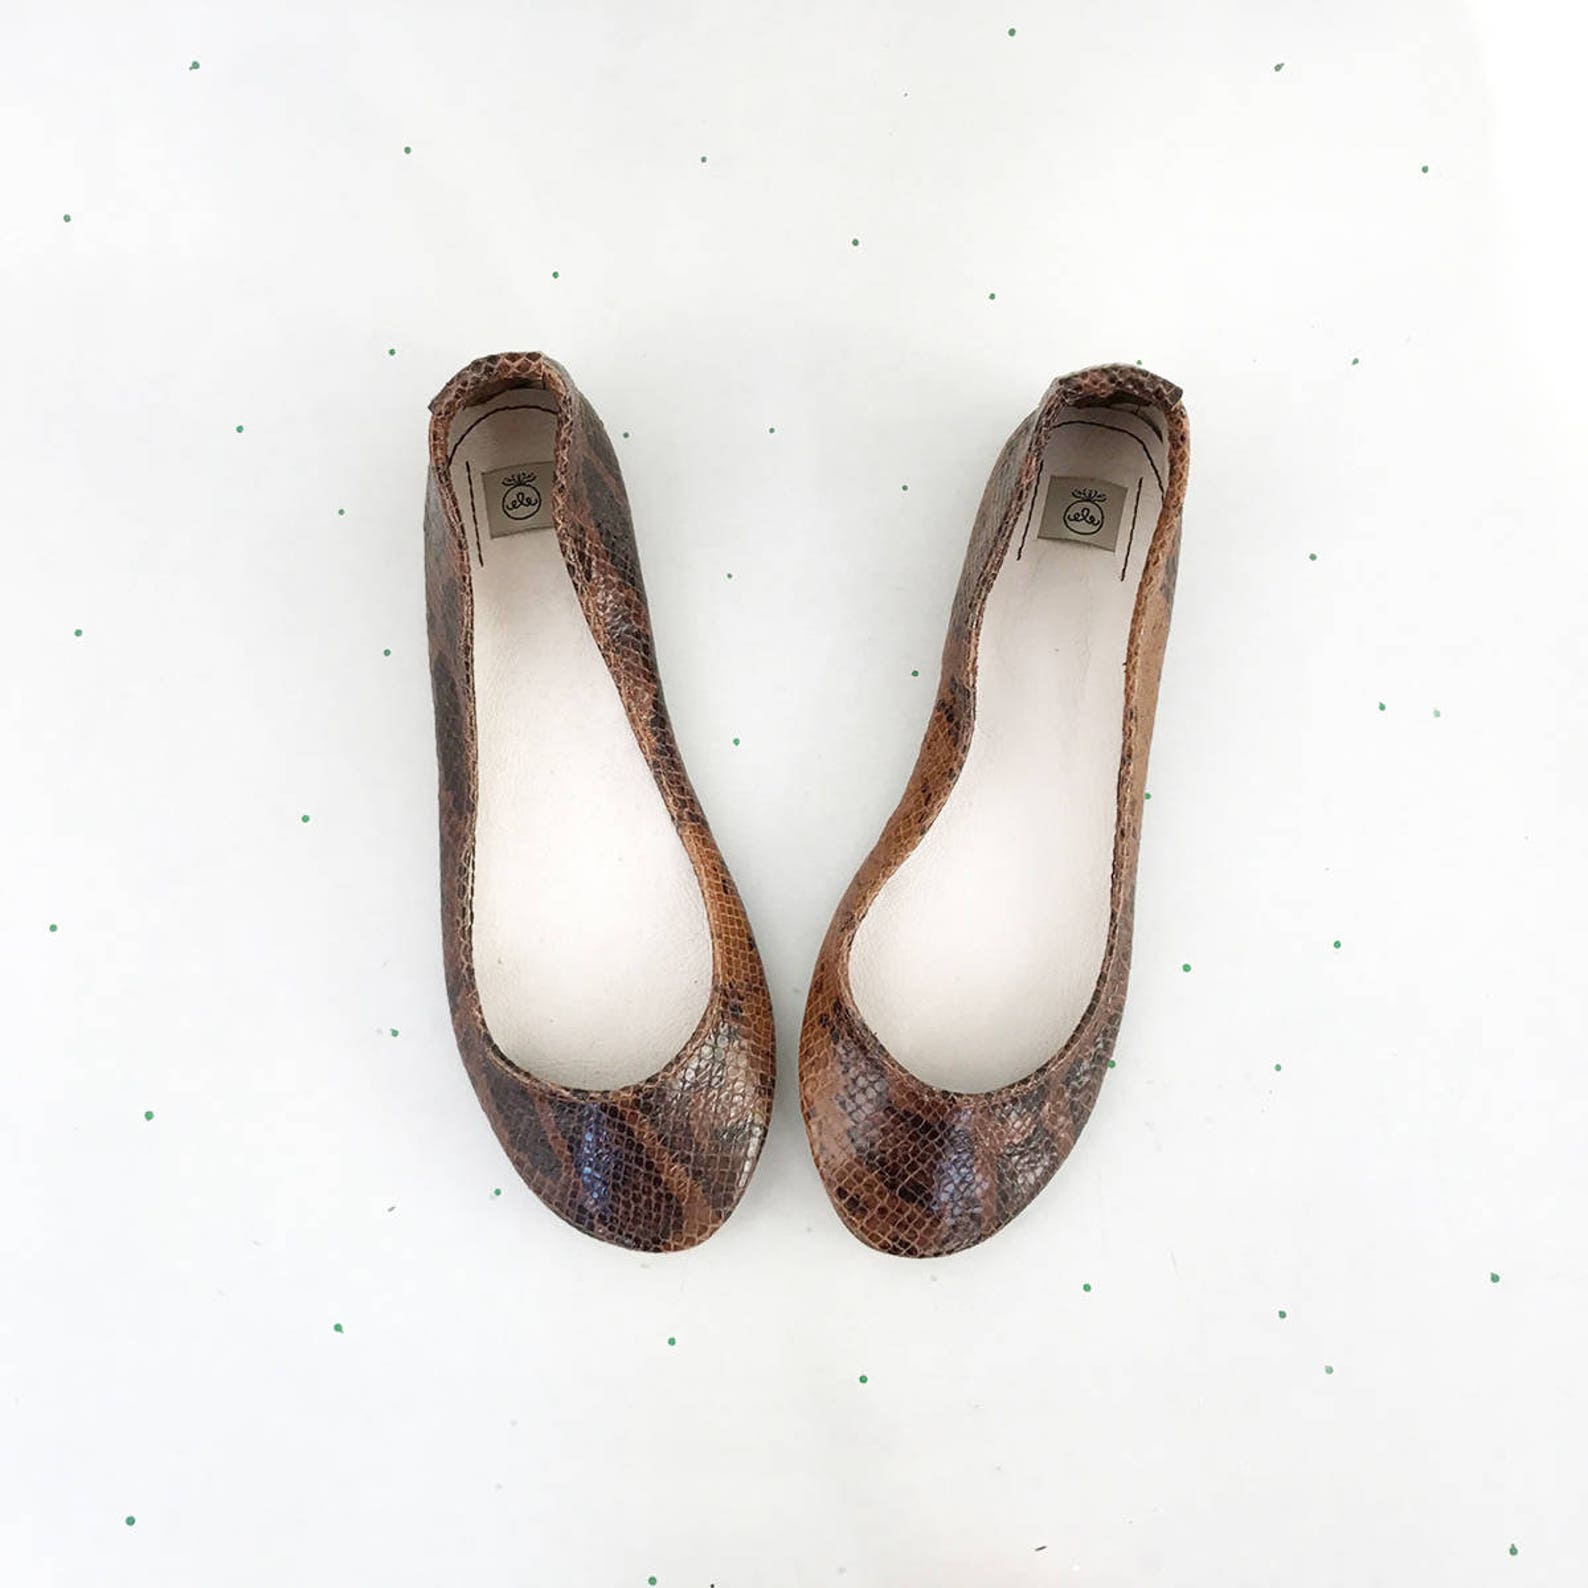 women leather shoes. women flats. ballet flats. handmade ballet flats. brown leather shoes. shoes women. italian leather shoes.